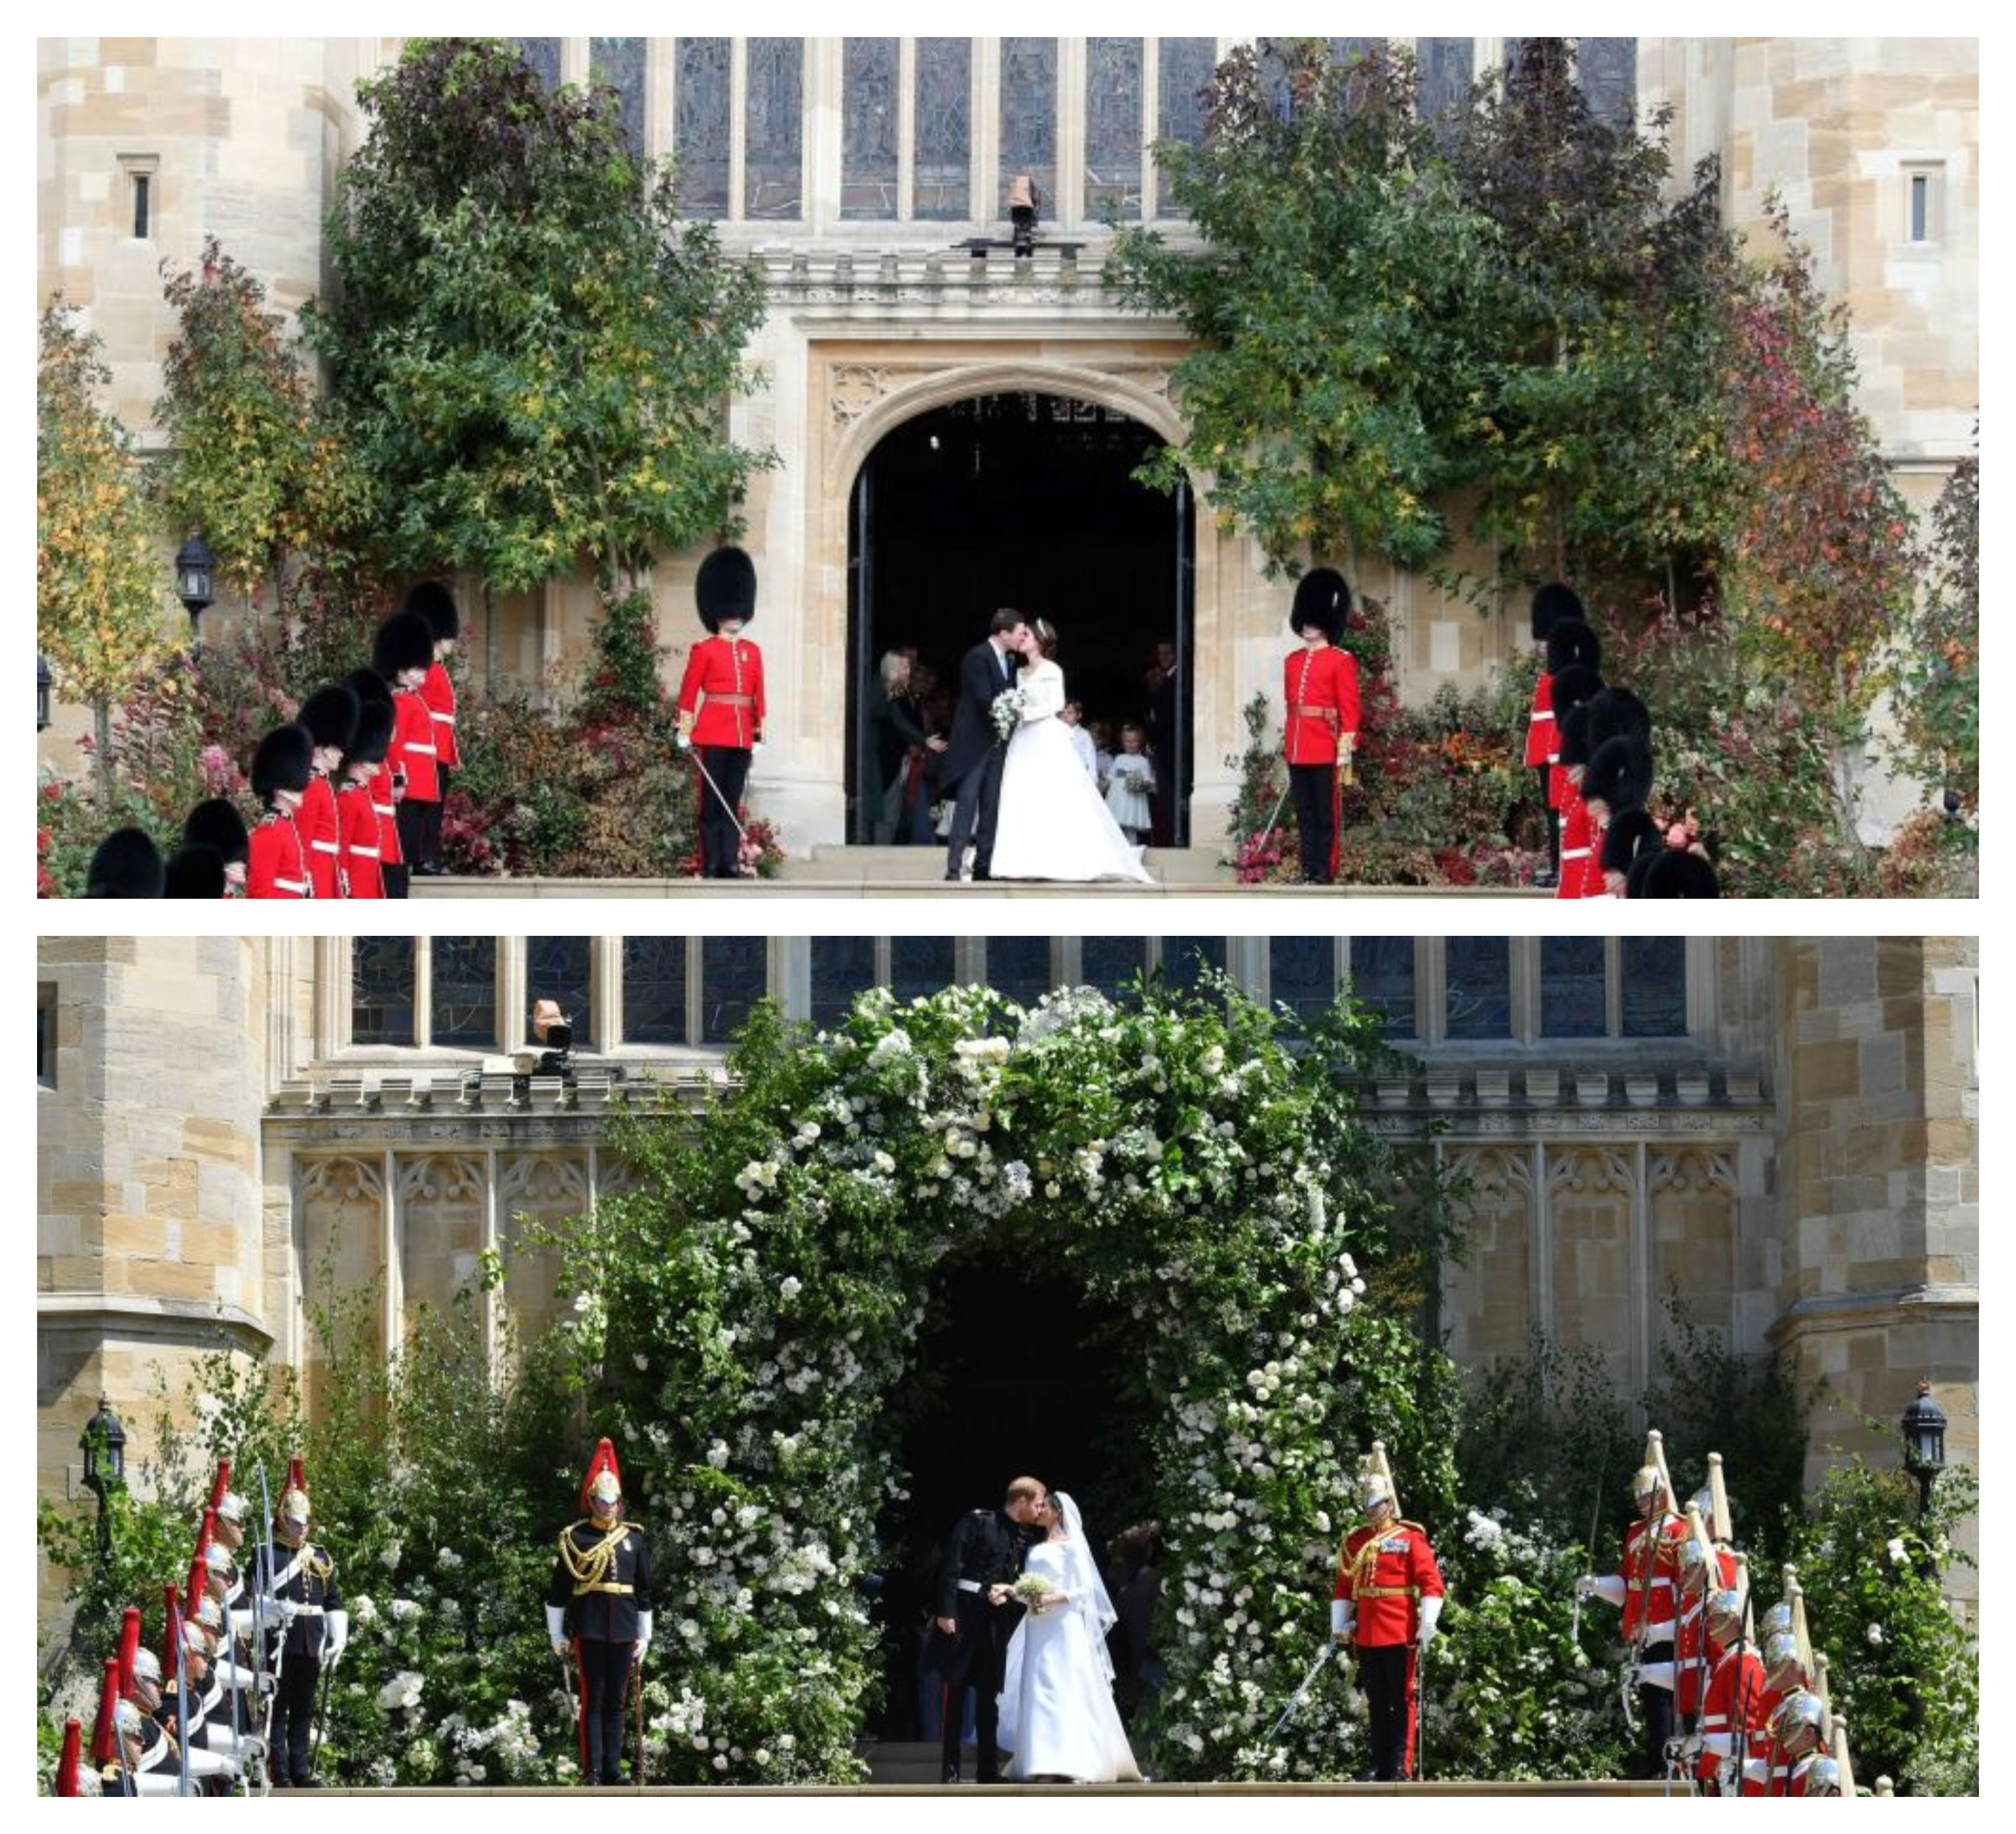 Royal Wedding Flowers How Princess Eugenie And Jack Brooksbank